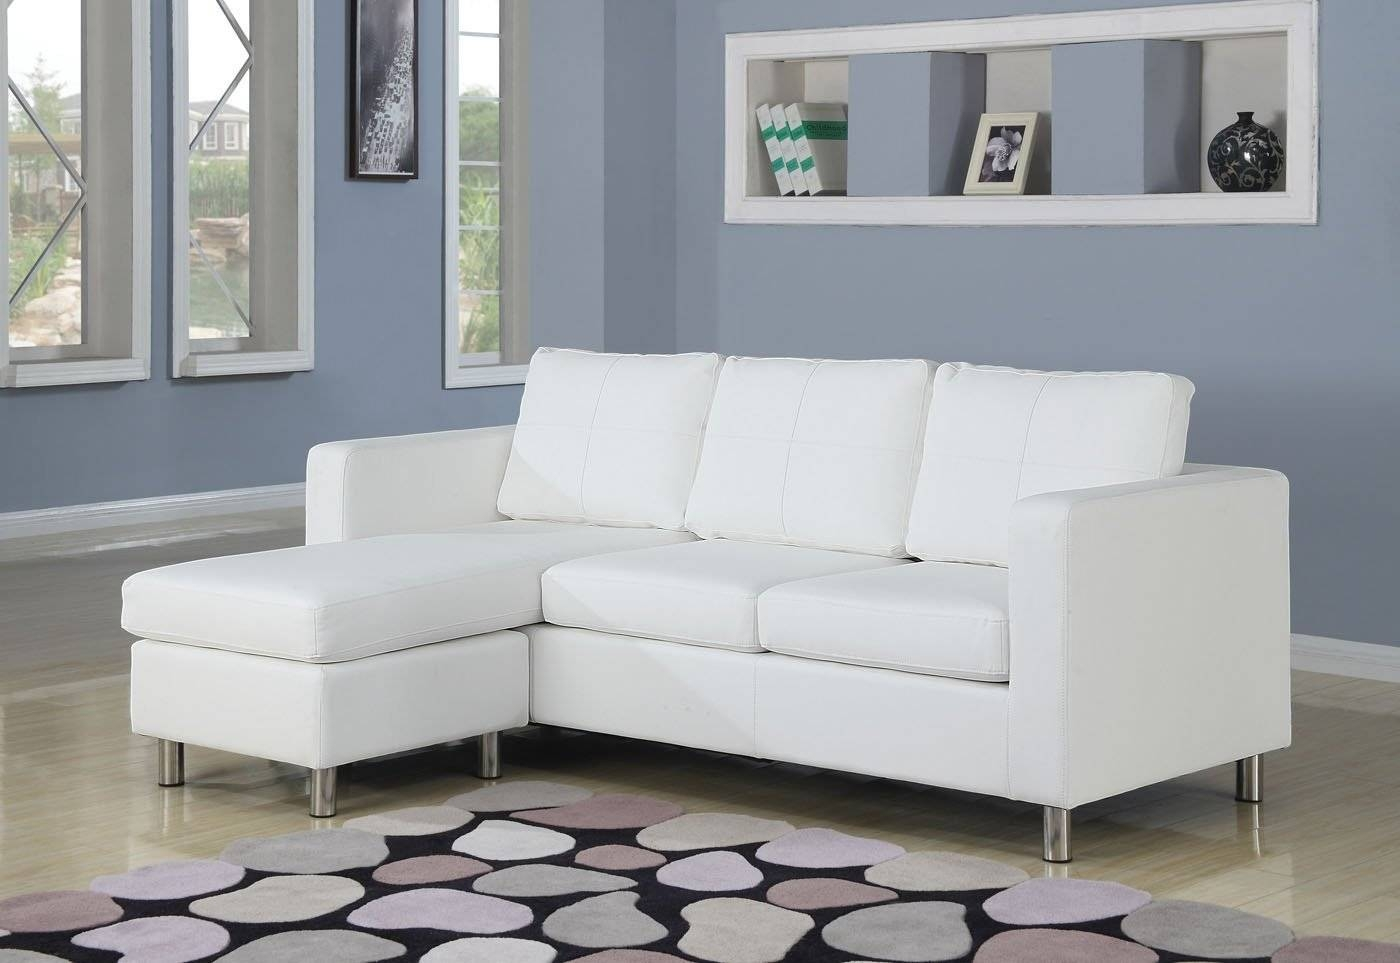 Reversible White Small Sectional Sofa With Chaise - S3Net throughout Mini Sectional Sofas (Image 21 of 30)